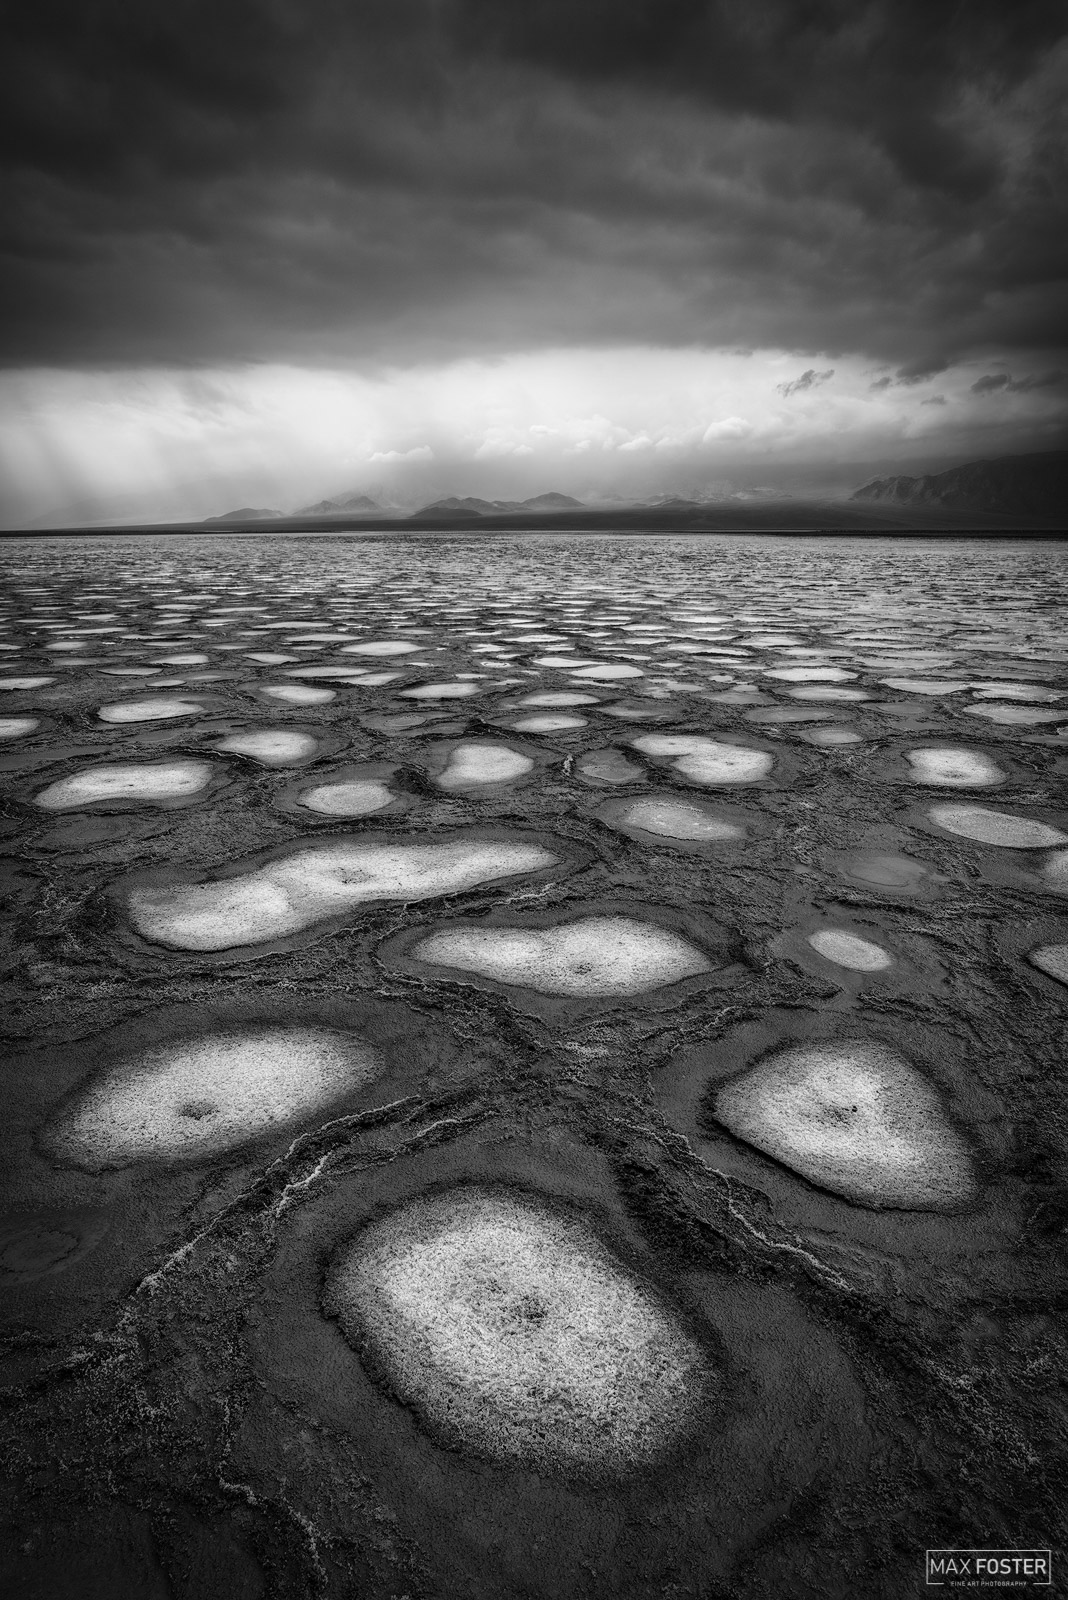 Death Valley National Park, California, Alien Landscape, Salt Pans, Salt Flats, Badwater Basin, Black and White, photo